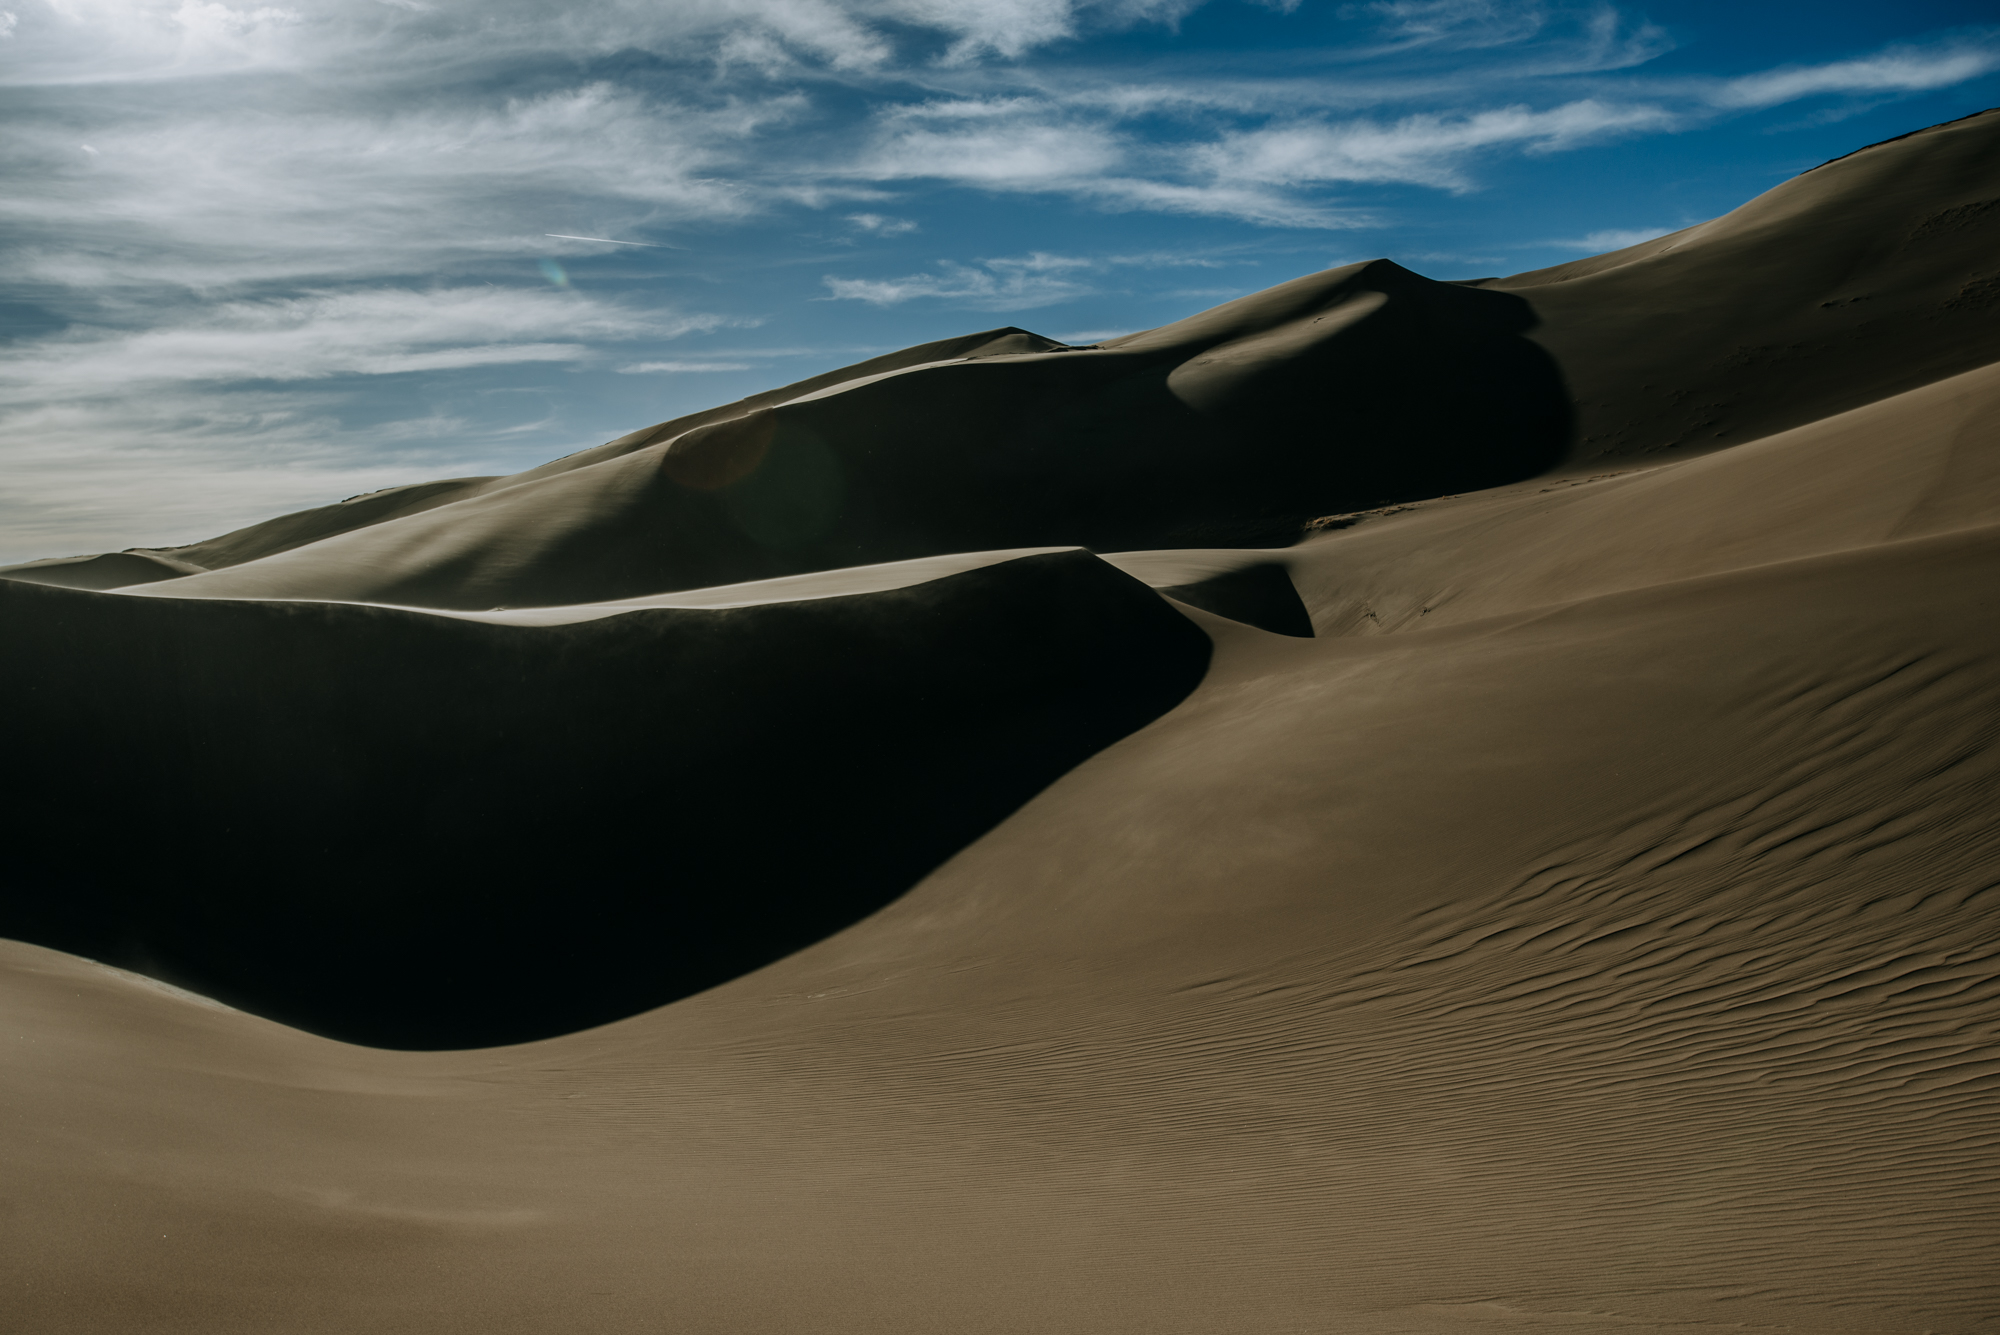 The shadows and harsh afternoon sun create abstract shapes at Great Sand Dunes National Park.